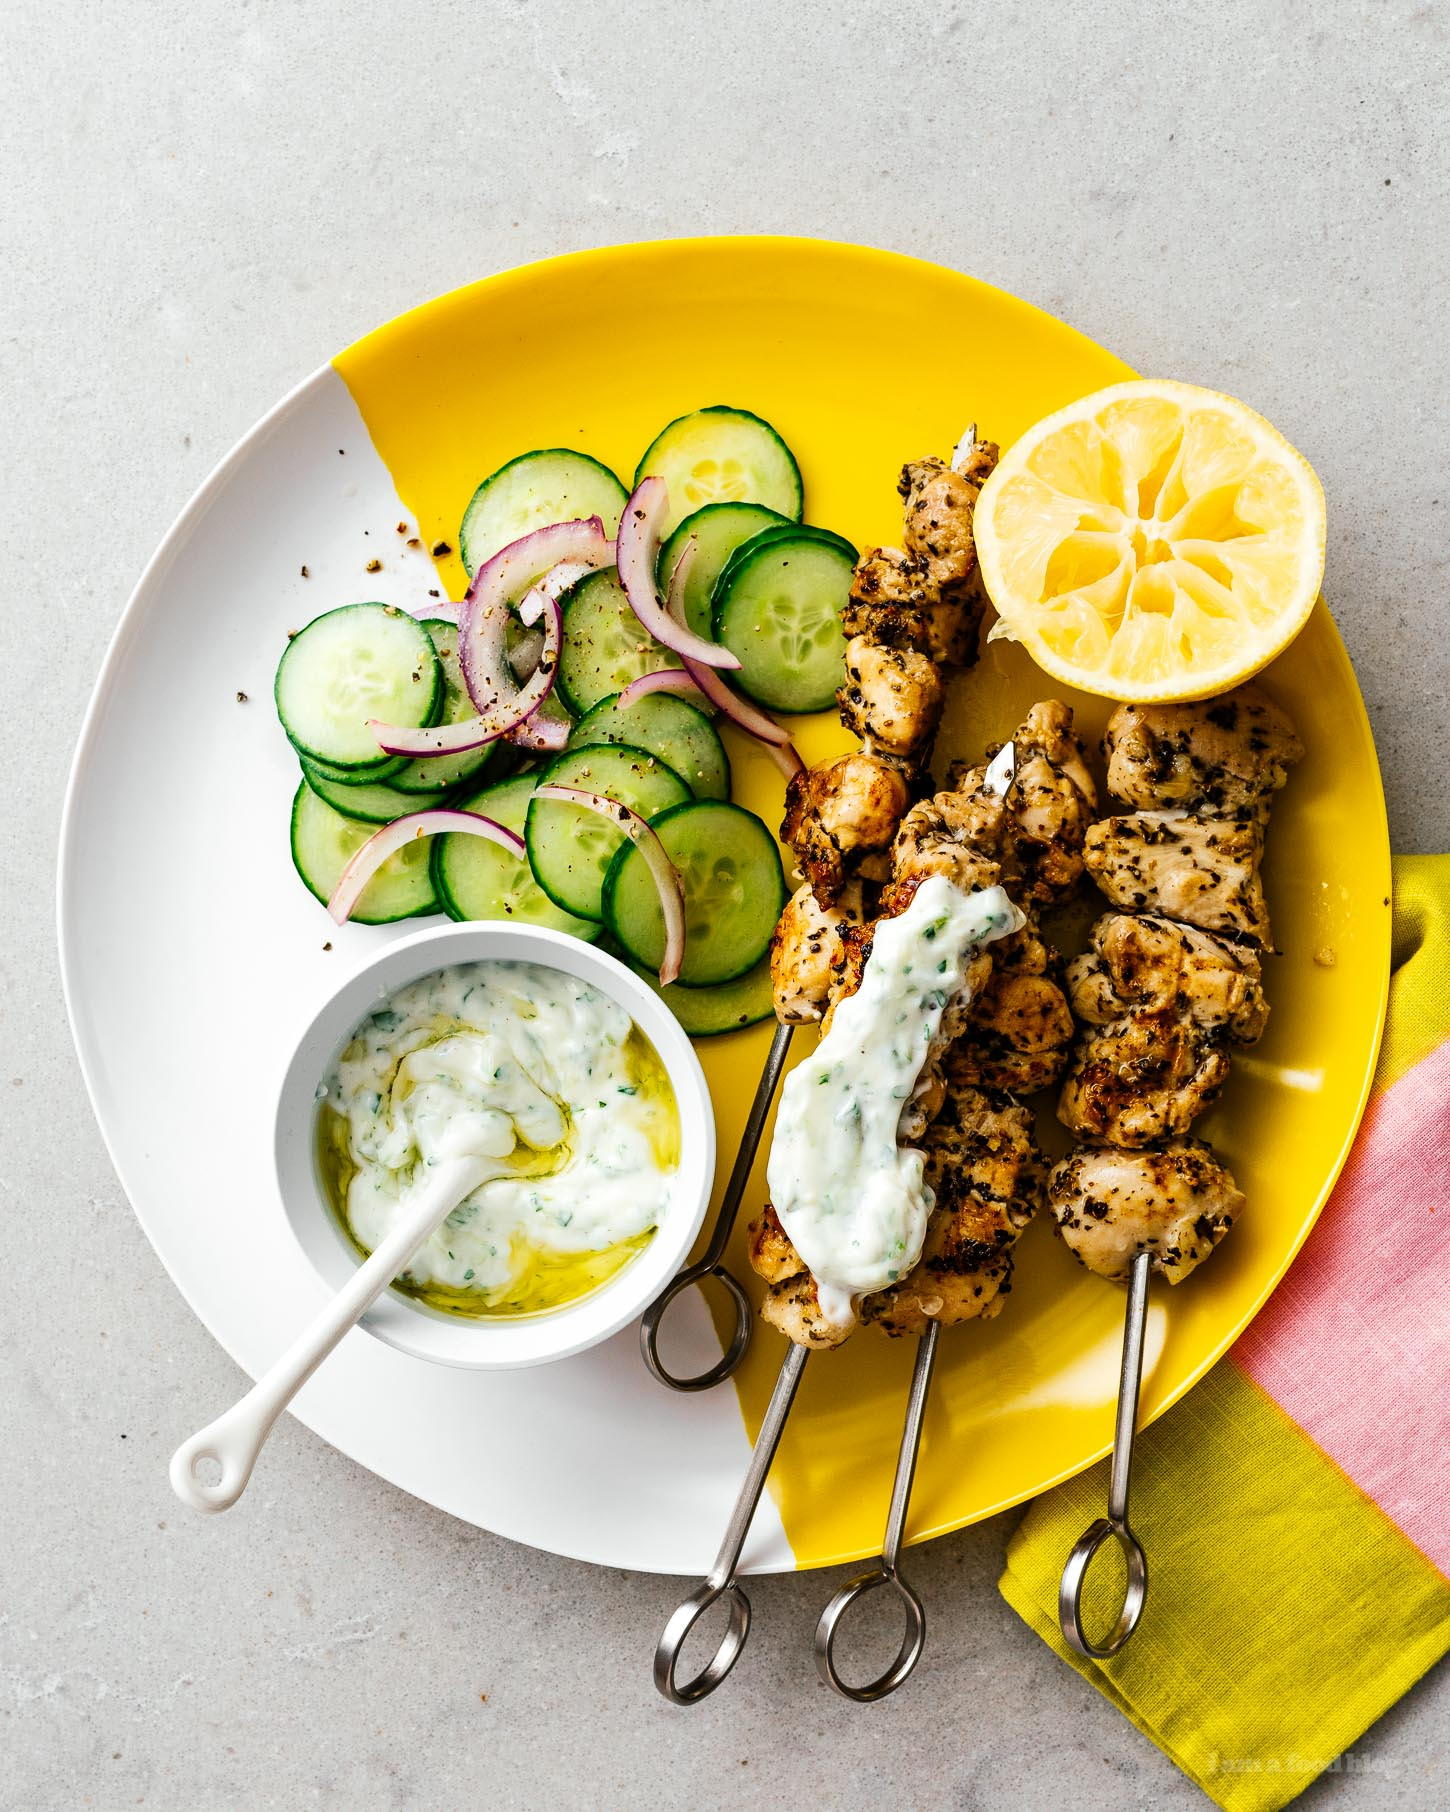 If you love chicken and are looking for a tasty recipe that's easy to cook in the oven or on the grill, this low carb keto friendly chicken souvlaki is for you! #lowcarb #keto #ketofriendly #ketorecipe #chicken #chickenrecipe #recipes #dinner